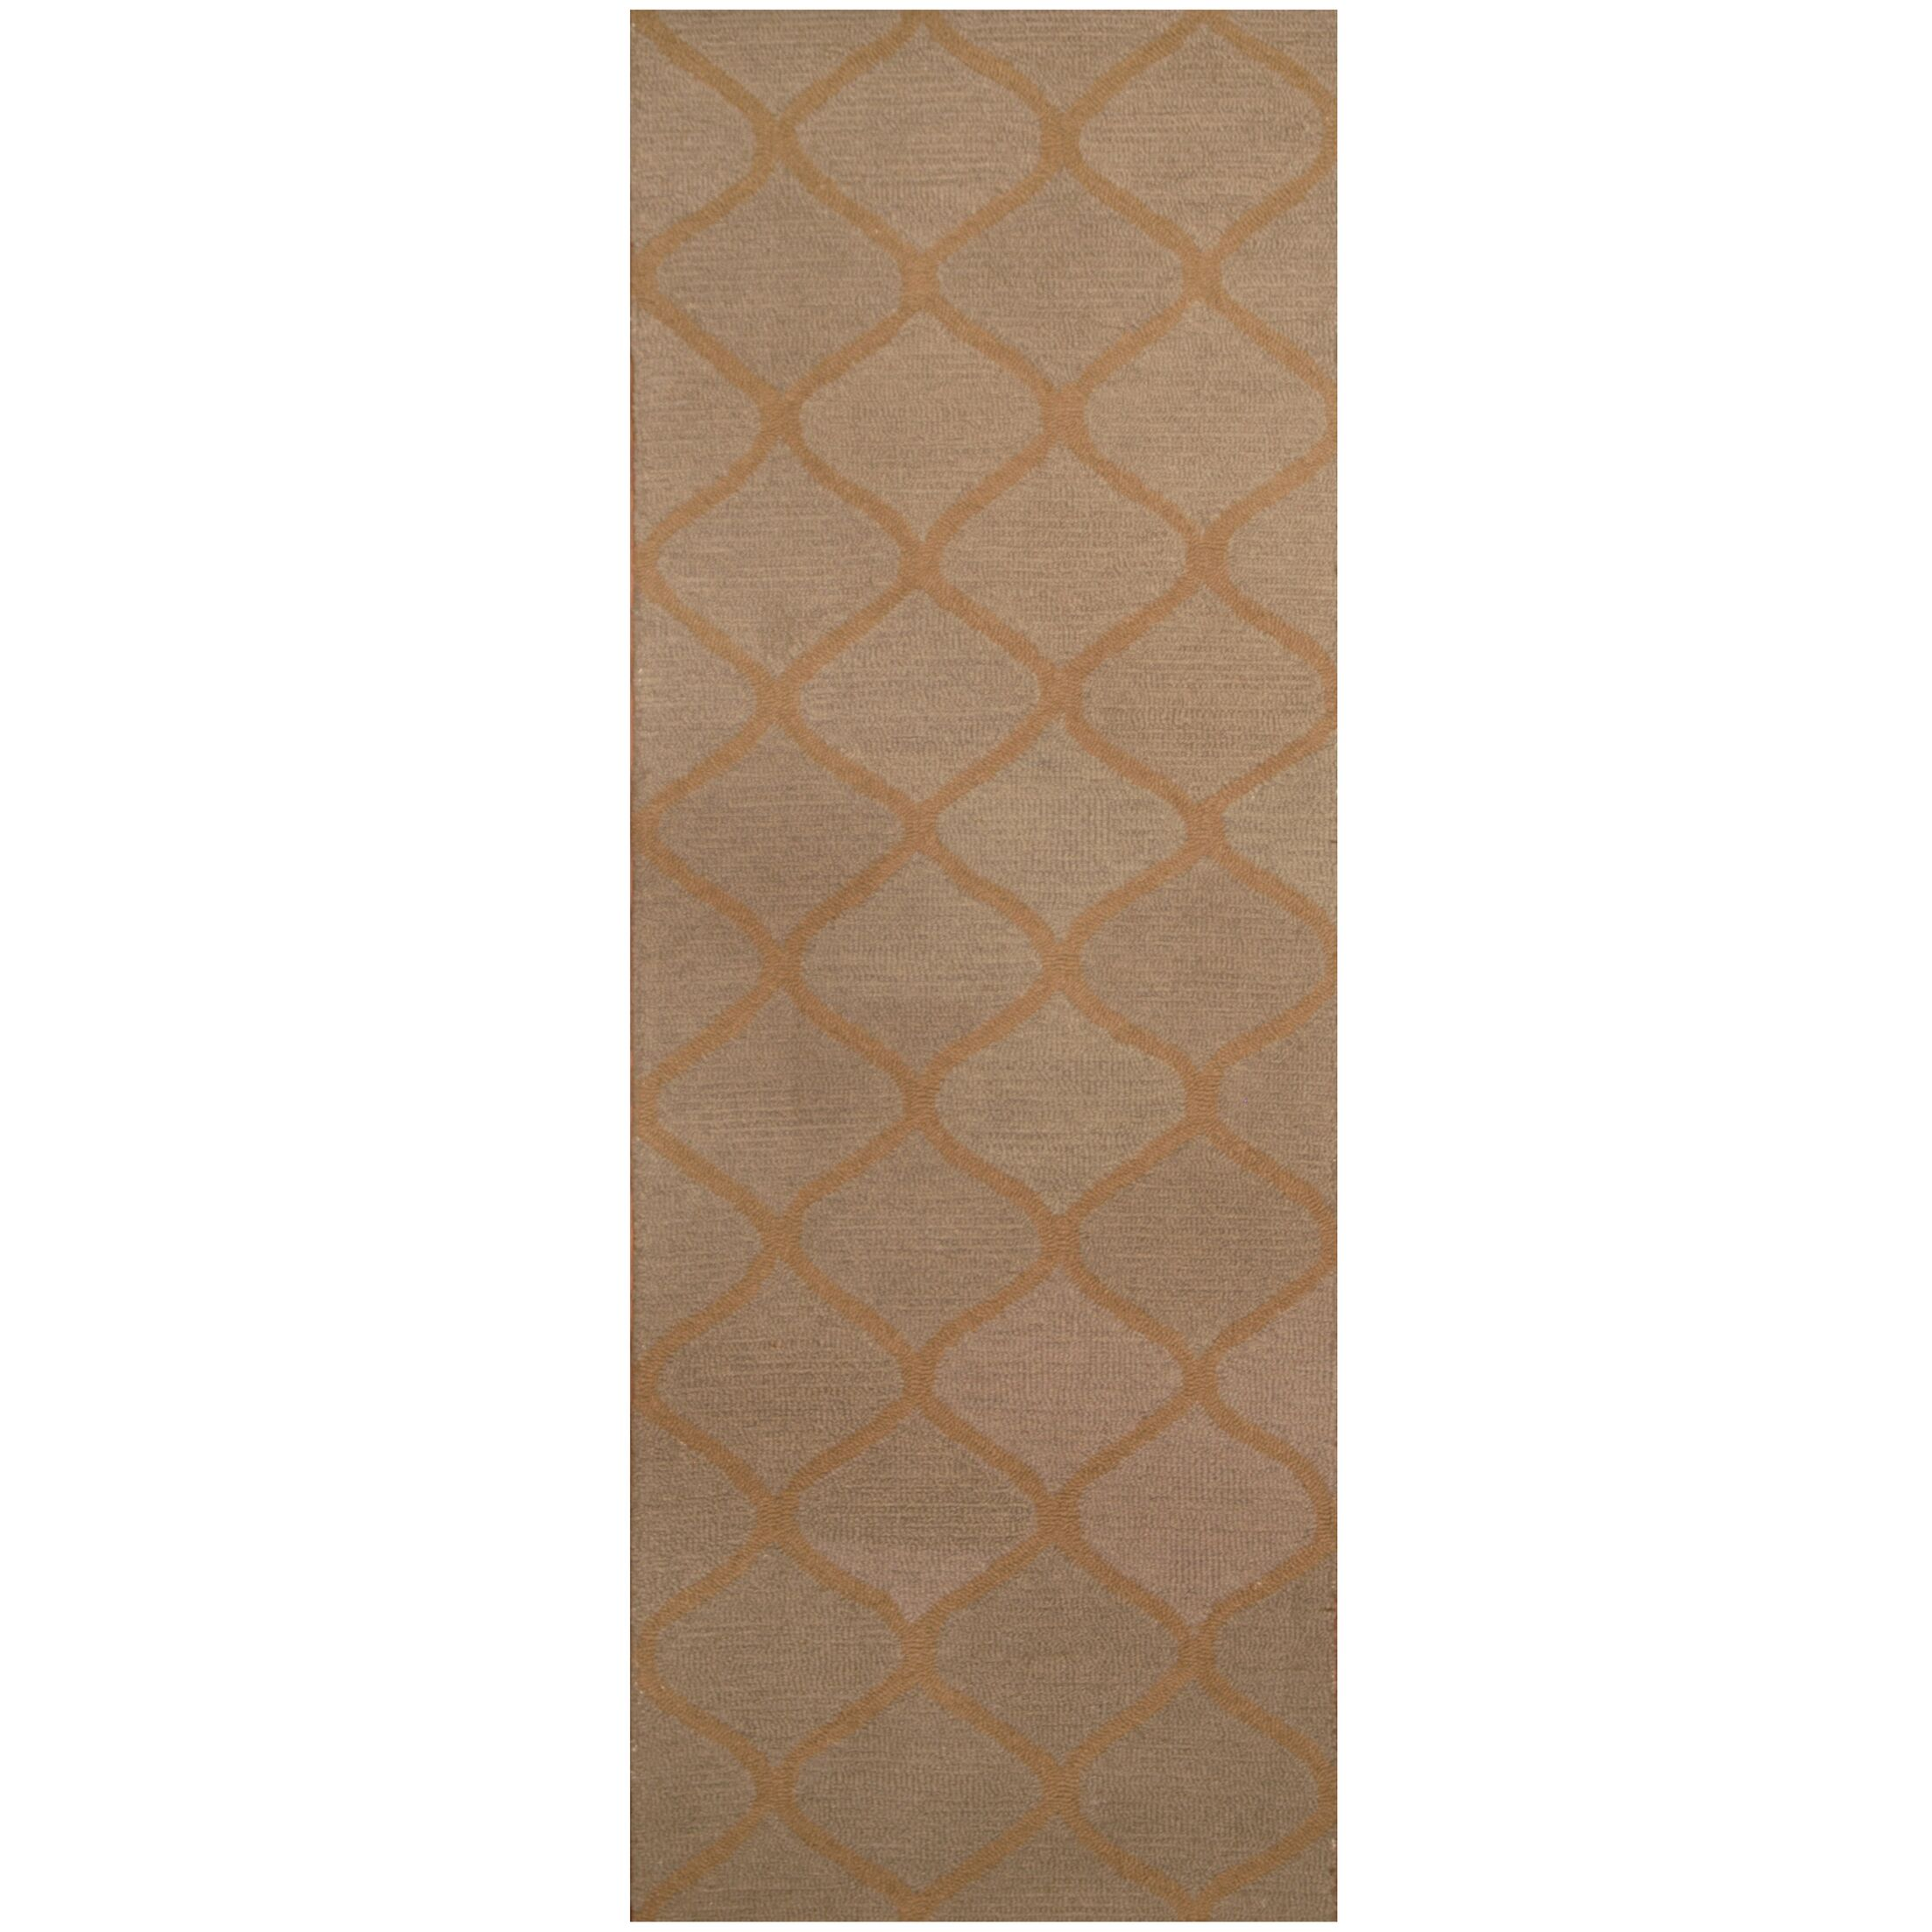 Hand-Tufted Light Gray/Light Brown Area Rug